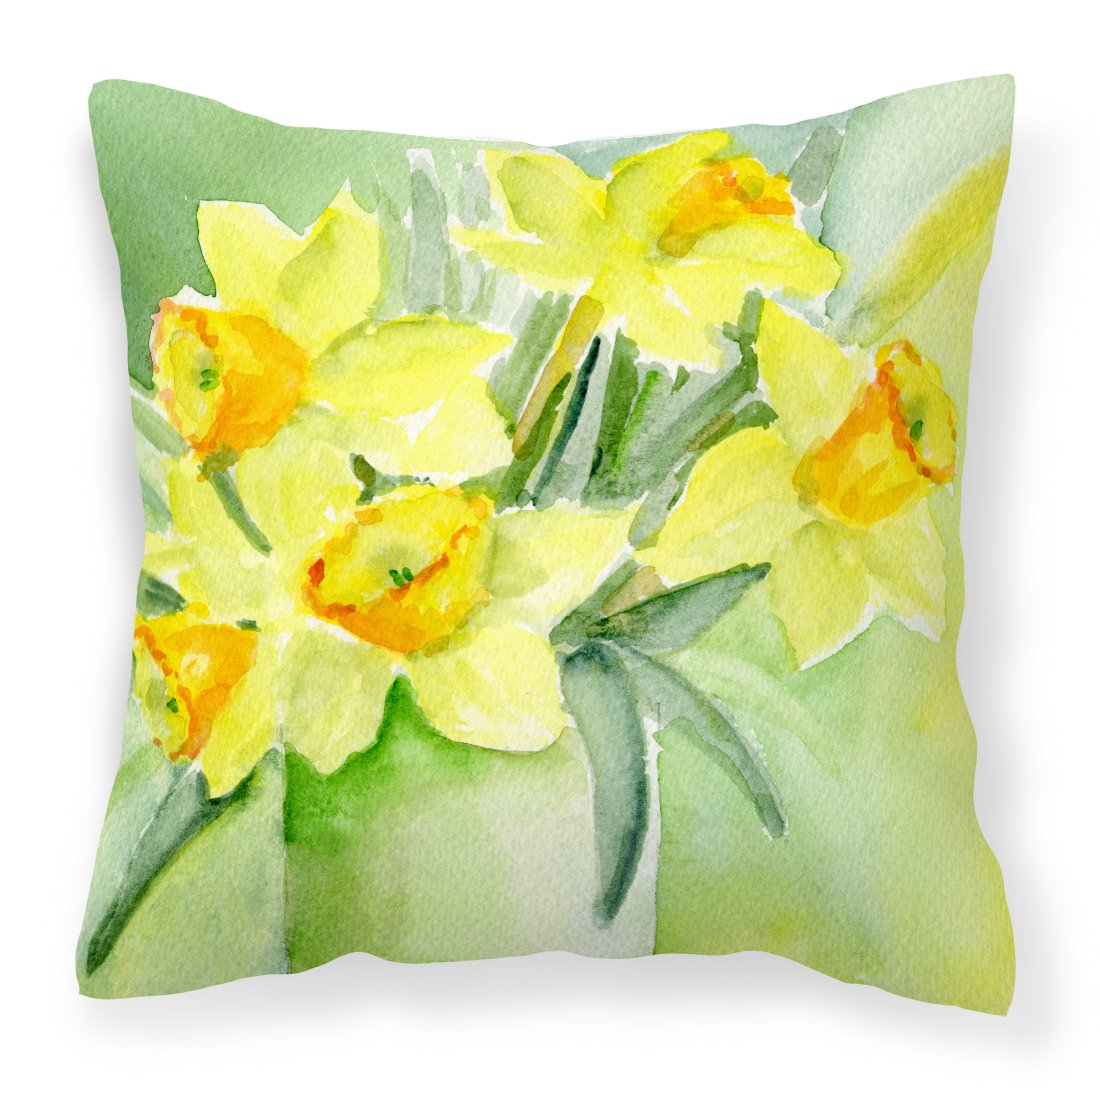 Daffodils by Maureen Bonfield Canvas Decorative Pillow by Caroline's Treasures